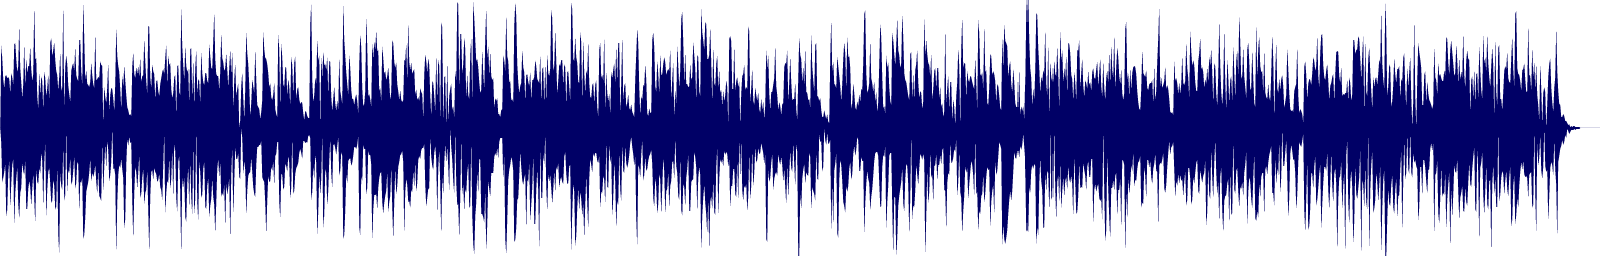 waveform of track #104182